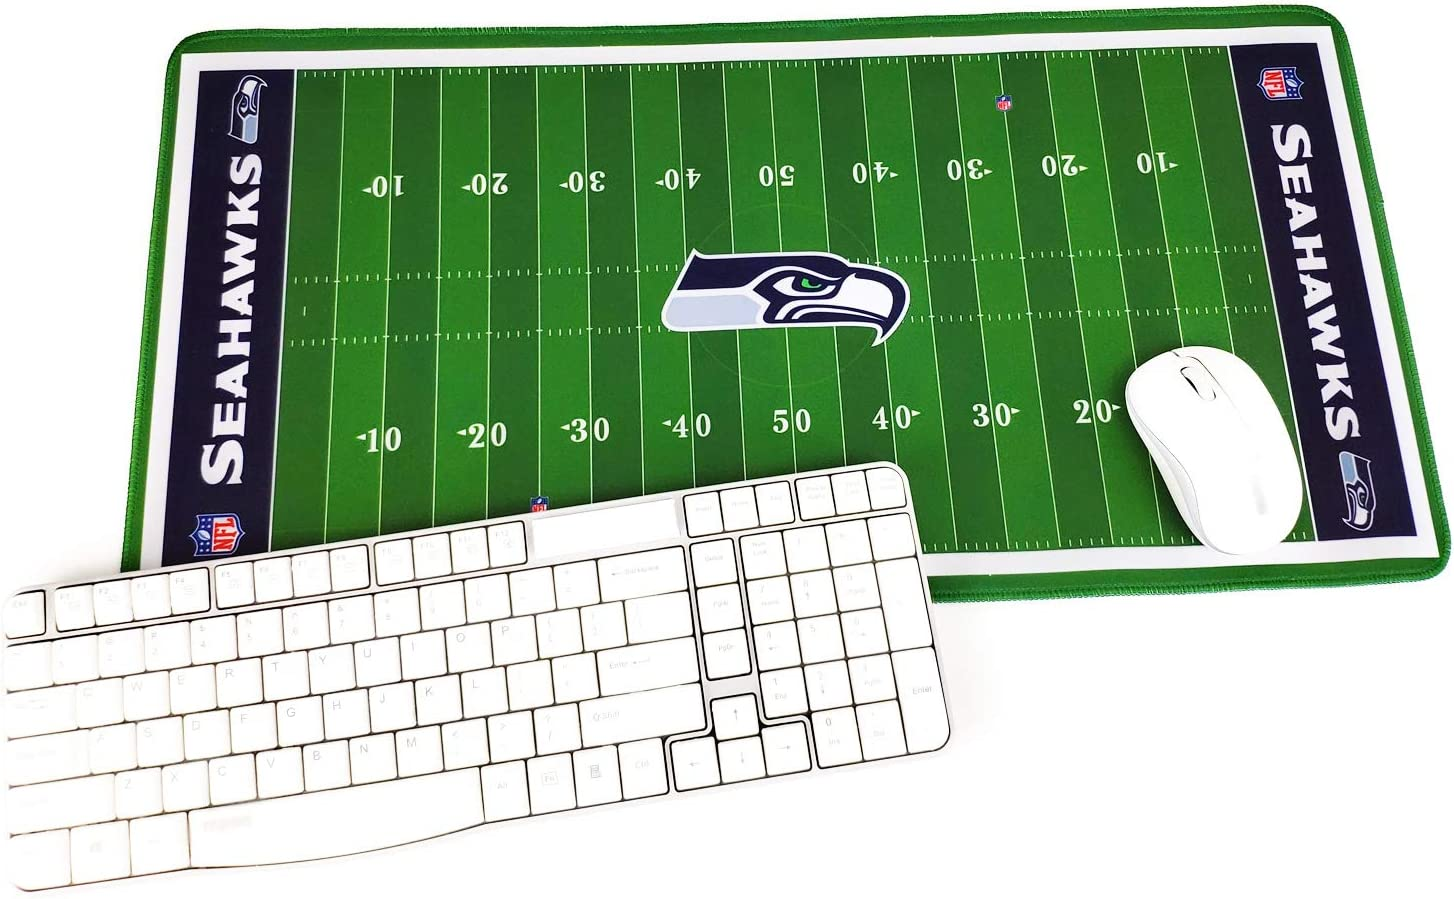 """TRIPRO Football Field Design Large Gaming Mouse Pad XXL Extended Mat Desk Pad Mousepad,Size 23.6""""x11.8"""",Water-Resistant,Non-Slip Base,for Seahawks Fans Gifts"""